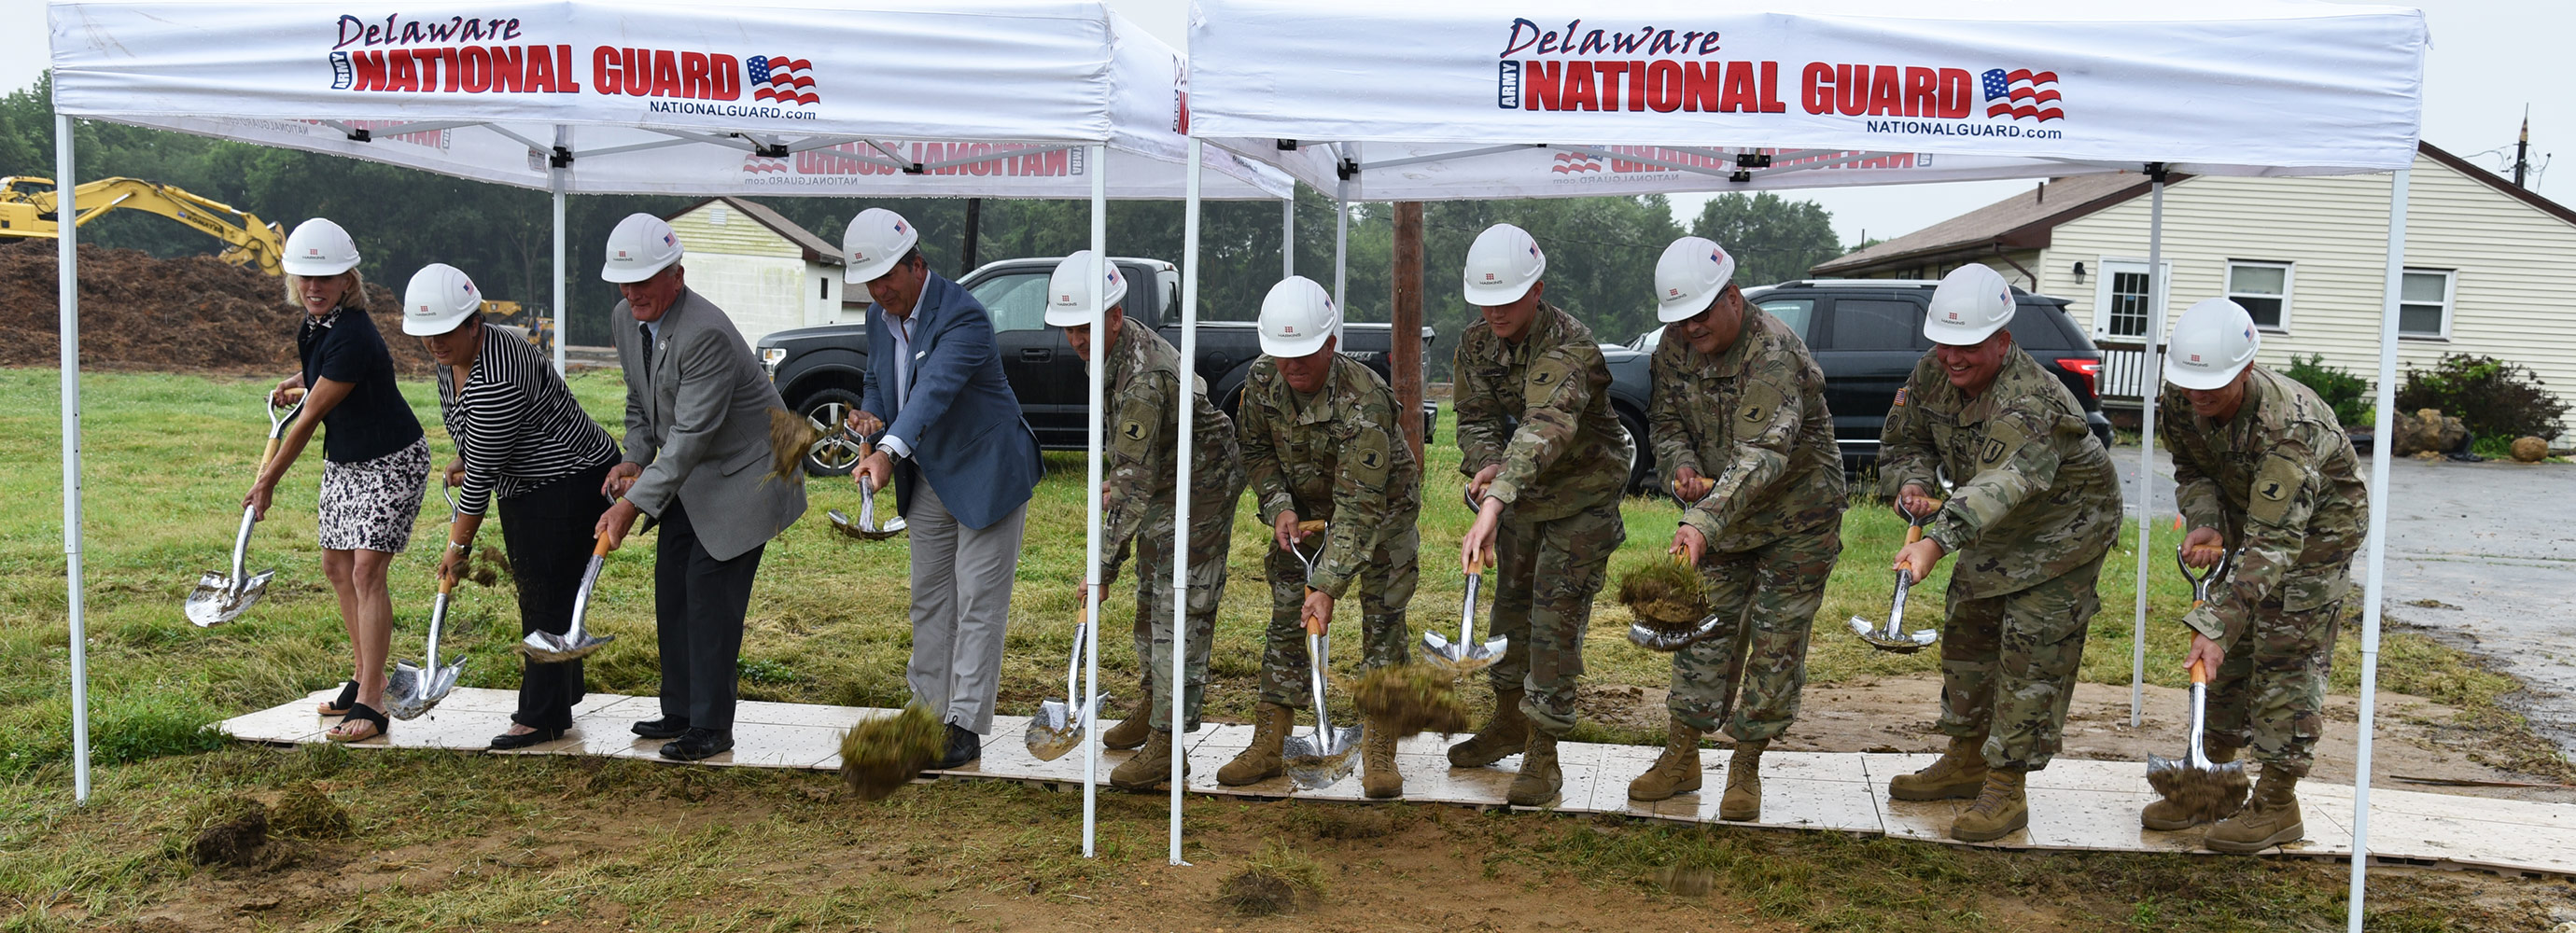 Group breaks ground on project in Delaware